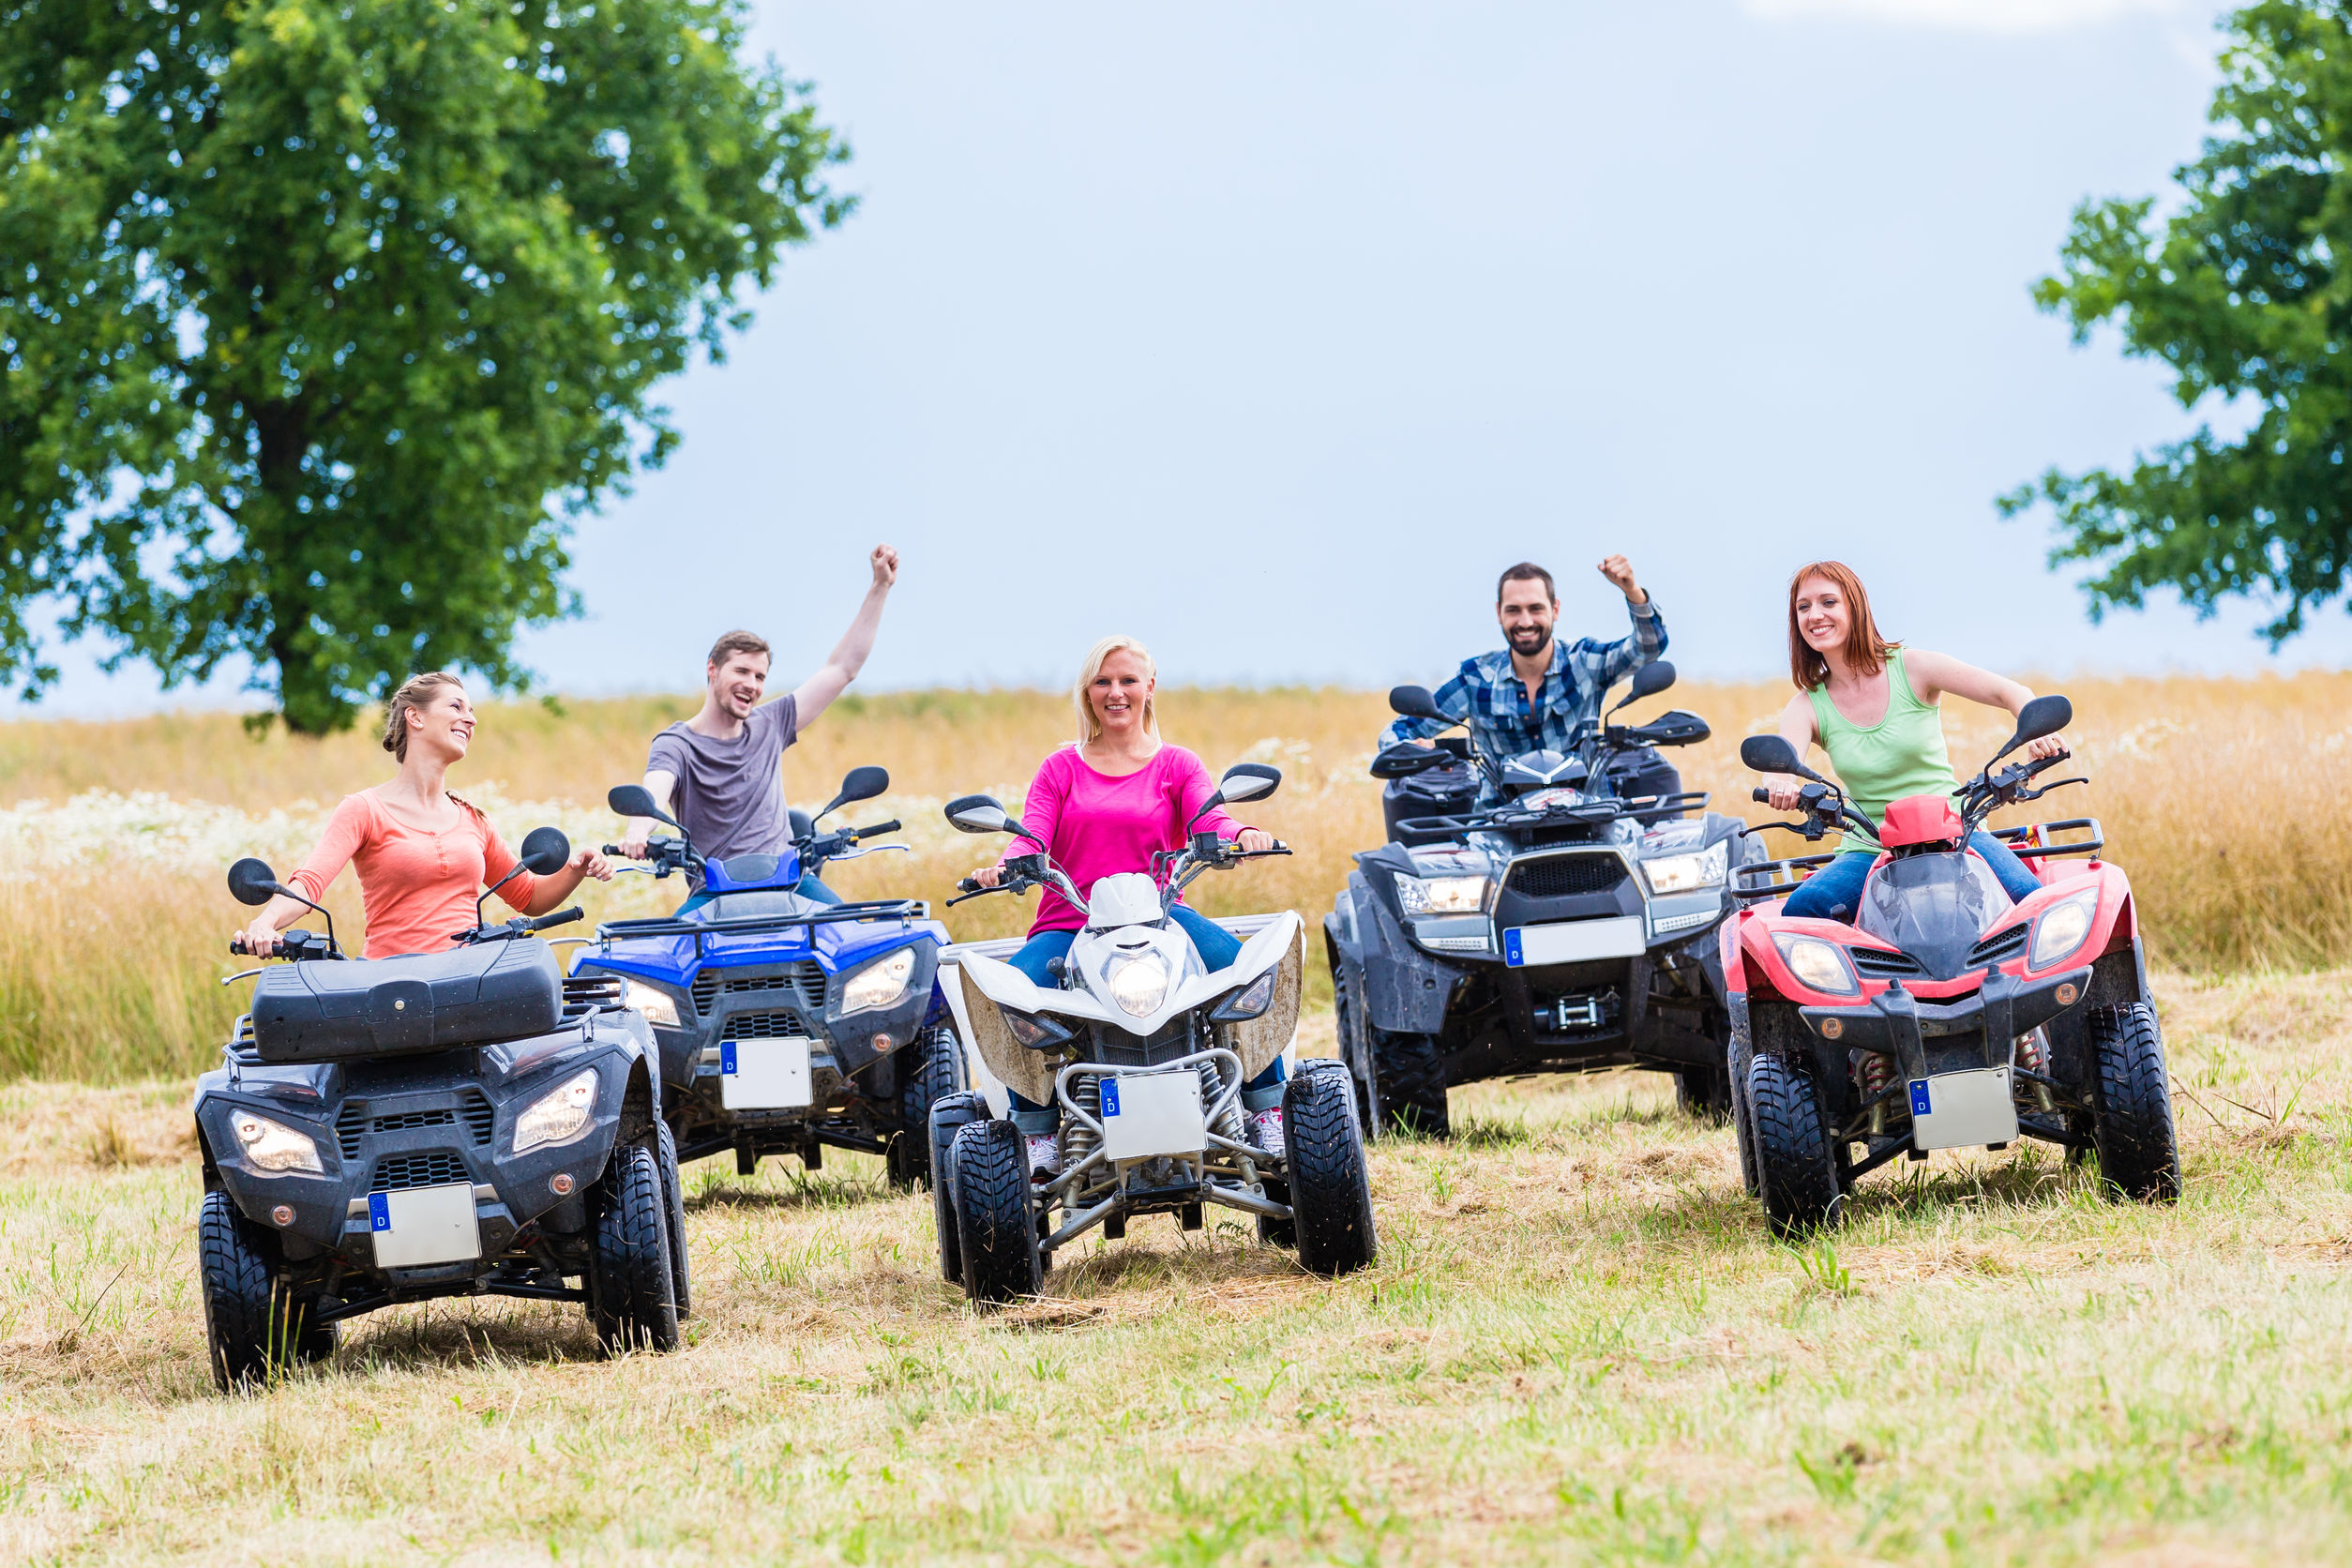 Ft Lauderdale ATV Insurance